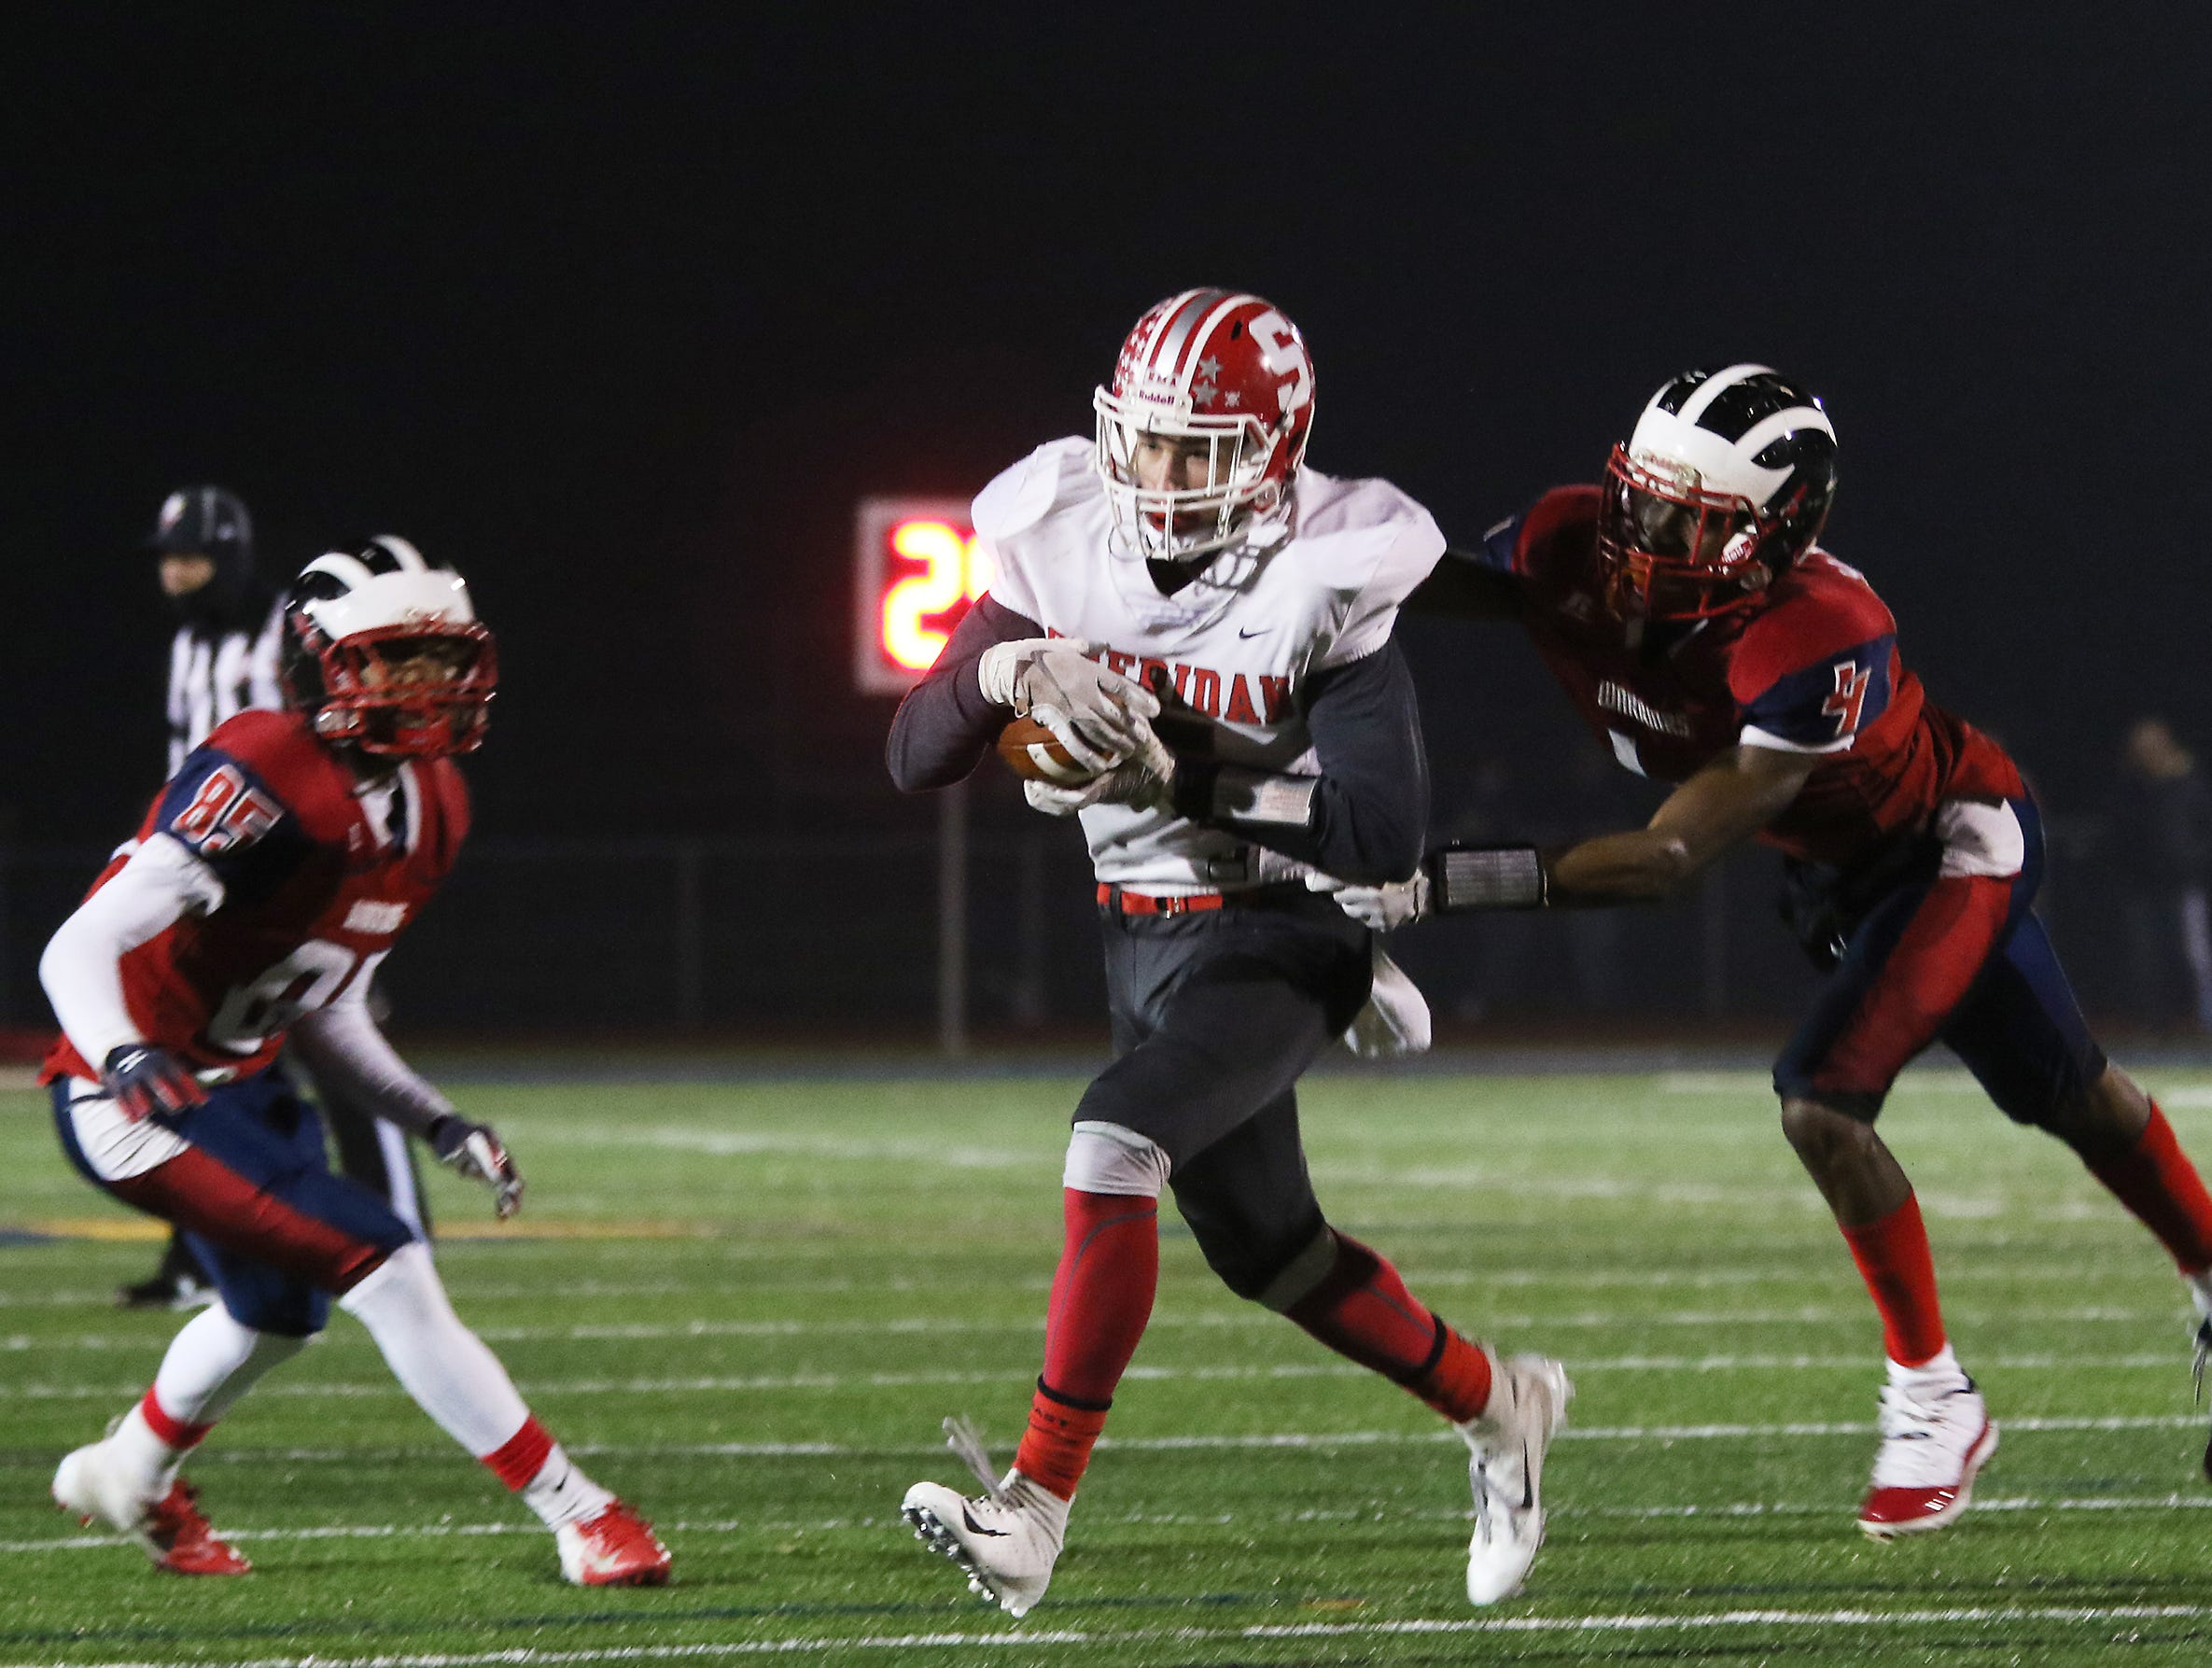 A Sheridan receiver pulls in a pass against Eastmoor.